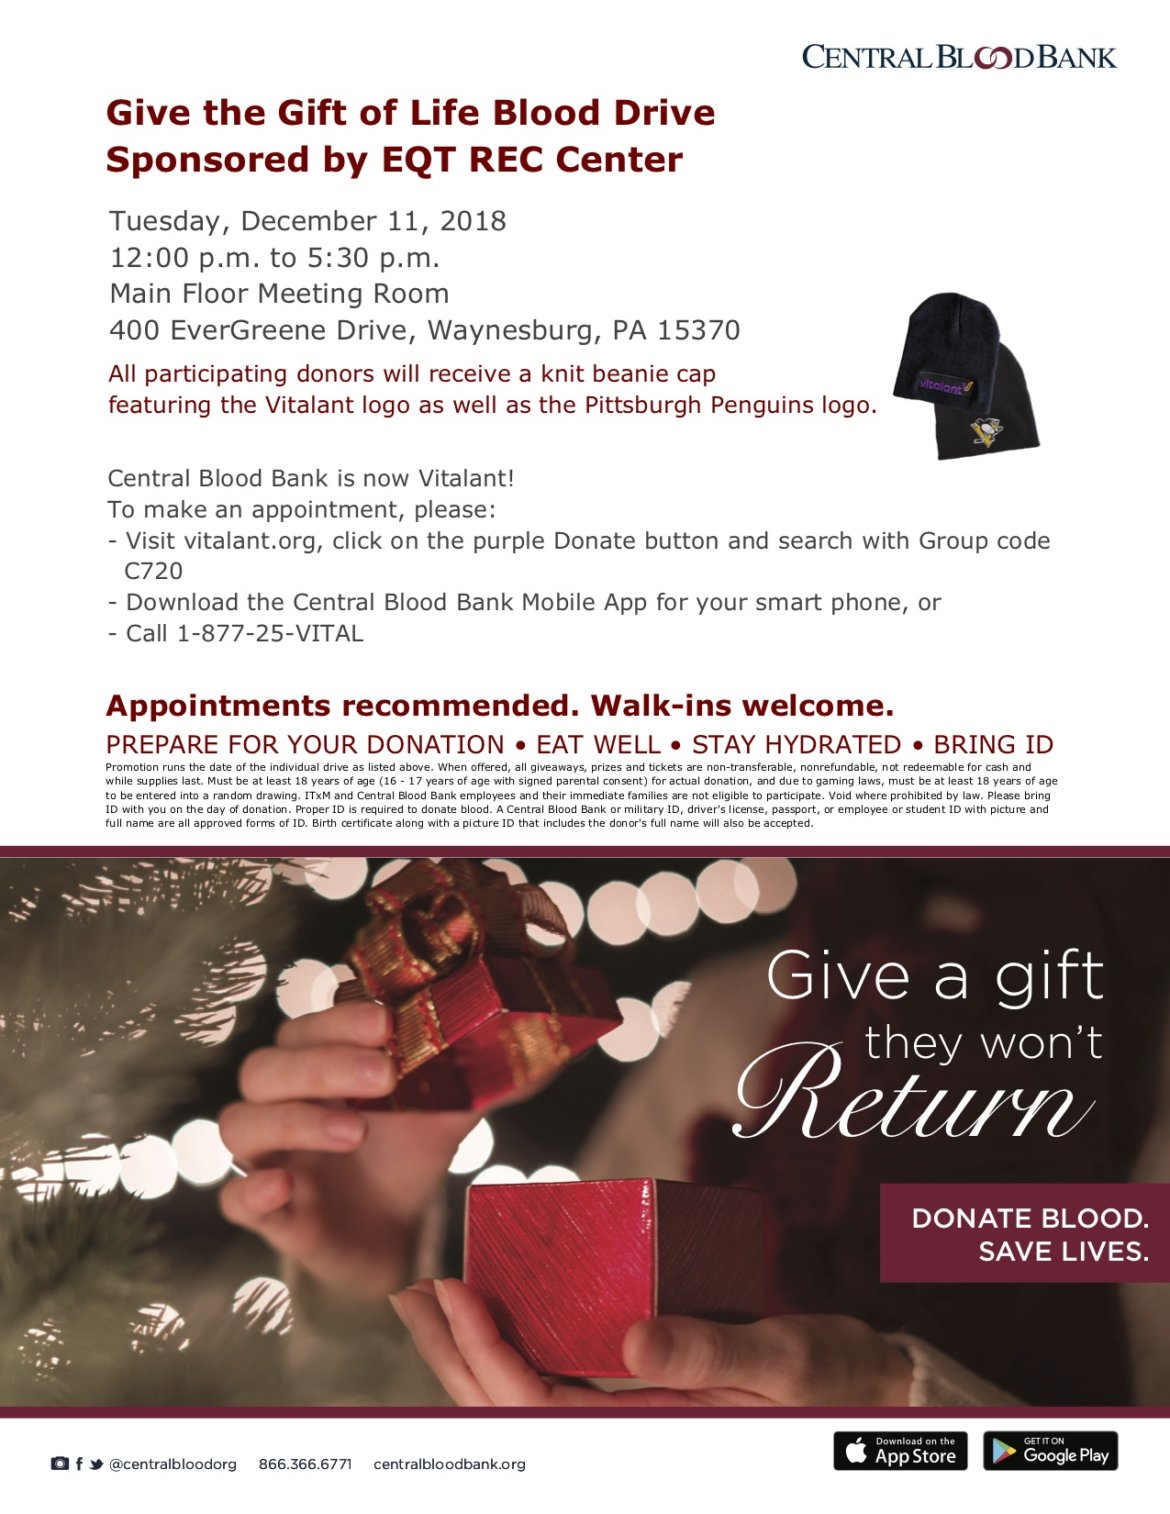 Give the Gift of Life Blood Drive Sponsored by EQT REC Center